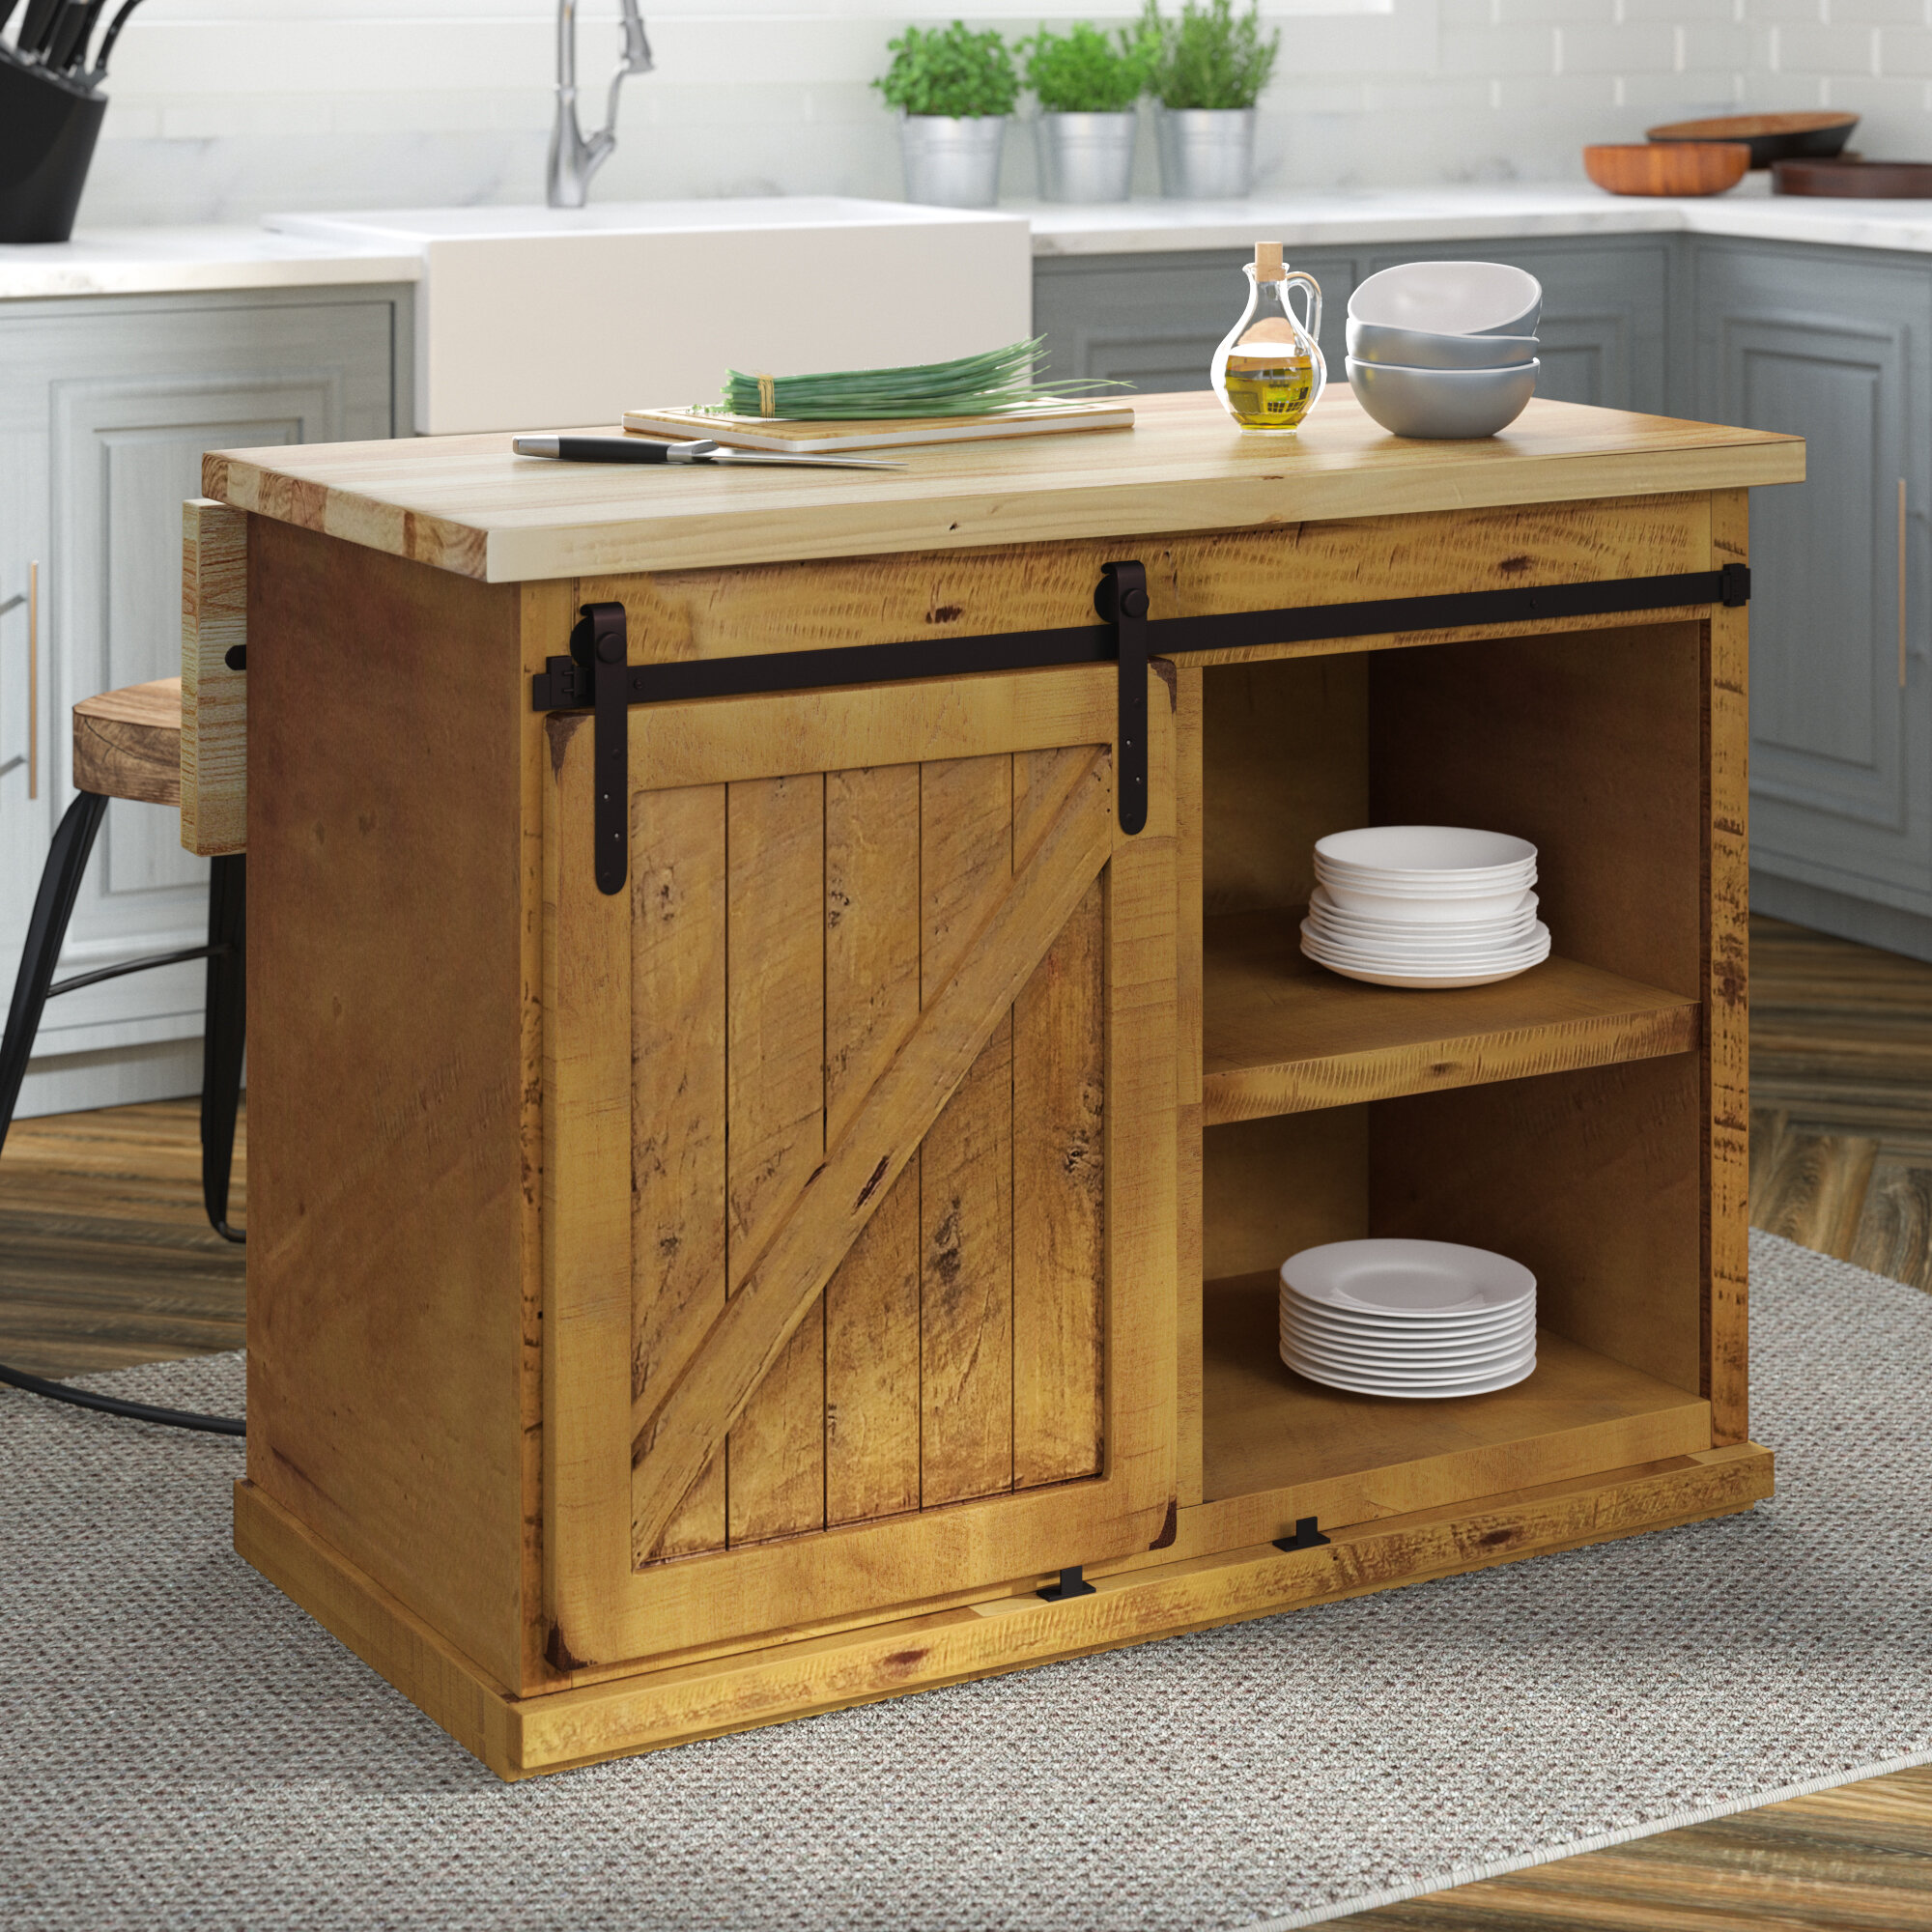 Gracie Oaks Uli Kitchen Island With Butcher Block Top Reviews Wayfair